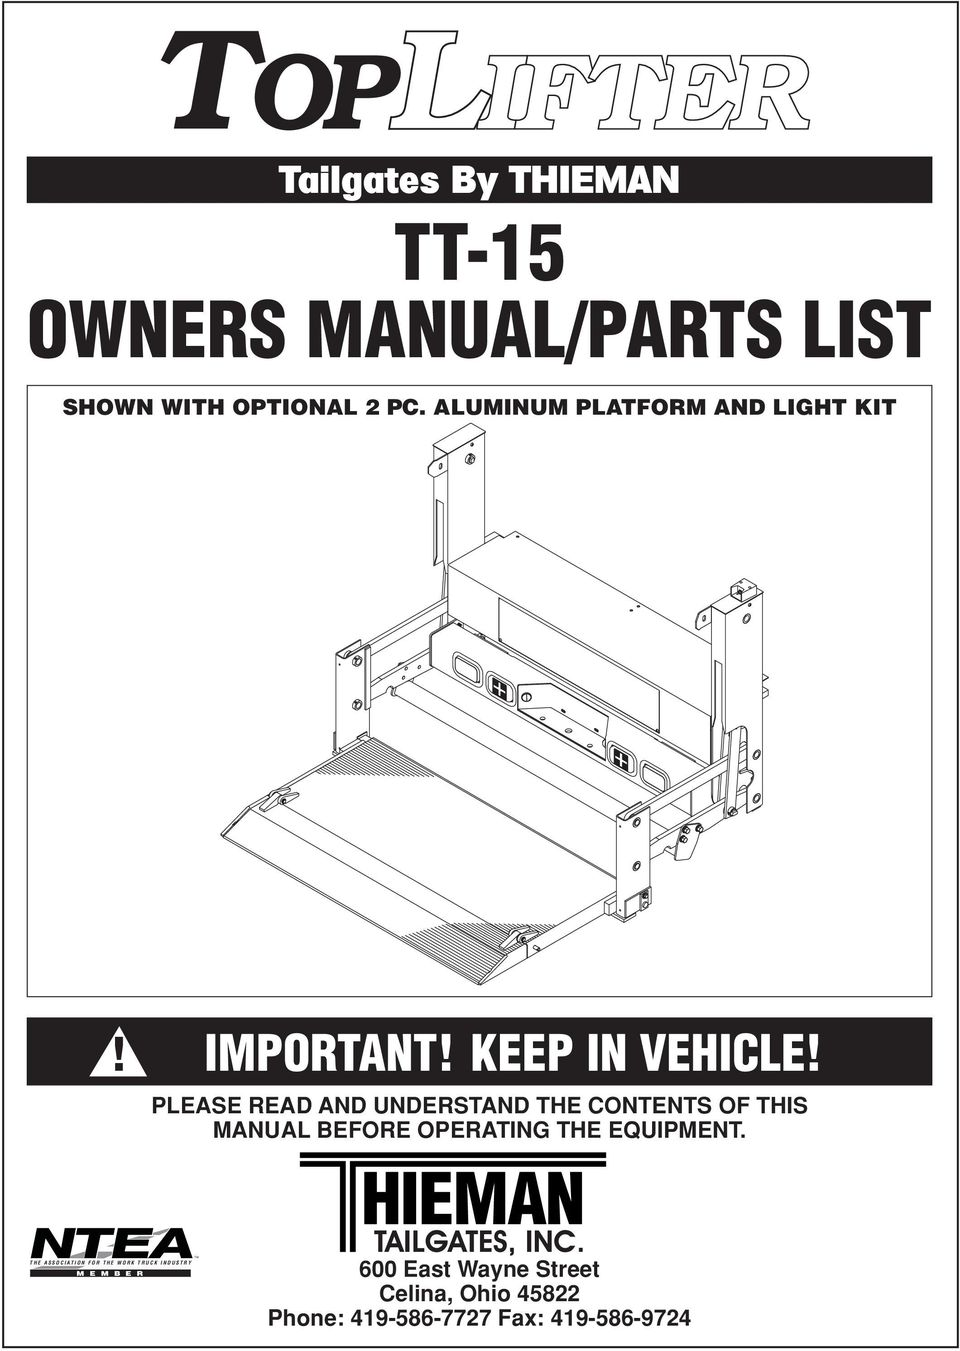 PLEASE READ AND UNDERSTAND THE CONTENTS OF THIS MANUAL BEFORE OPERATING THE  EQUIPMENT.